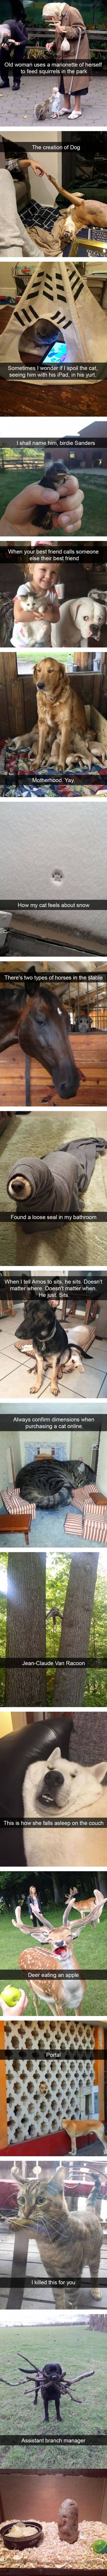 best dogs are nuts images on pinterest jokes fluffy pets and